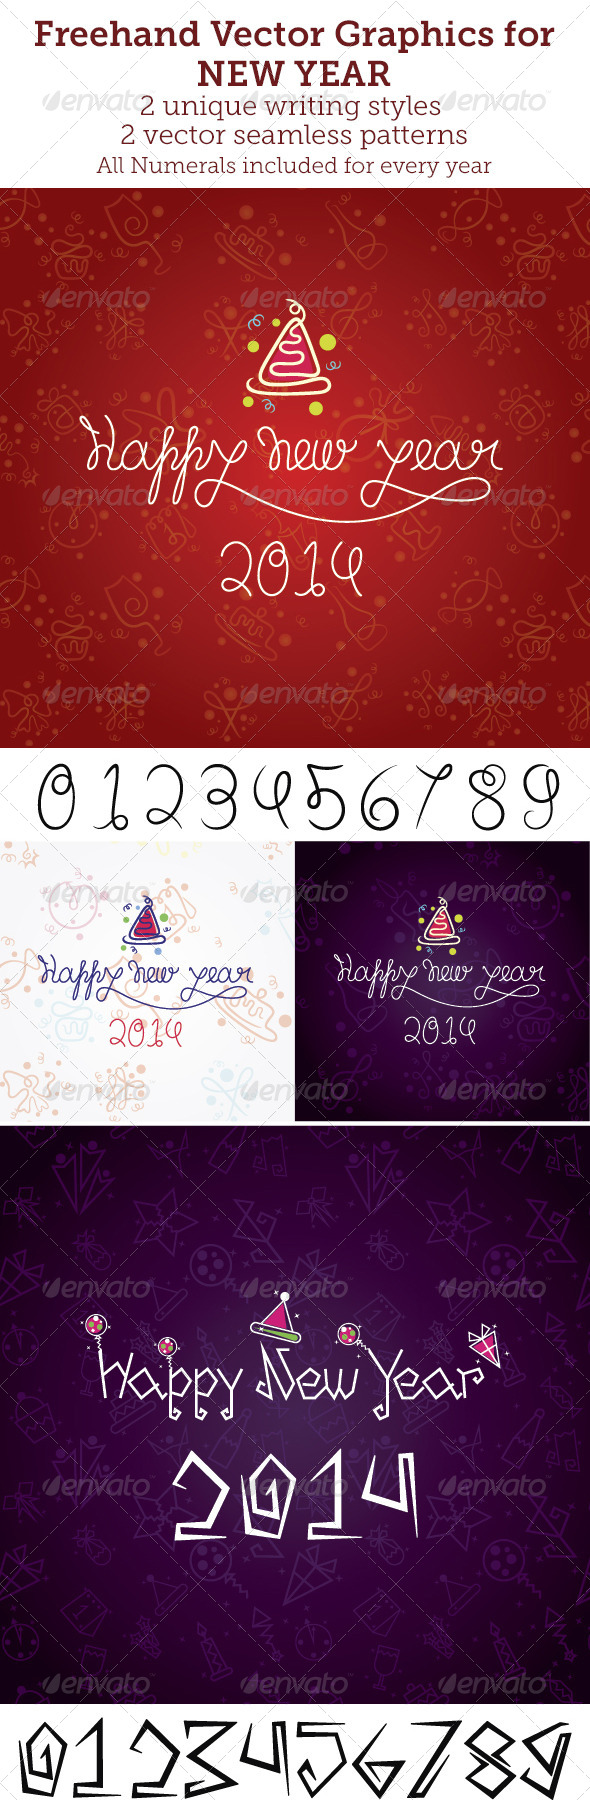 GraphicRiver Freehand Vector Graphics for New Year 6391292